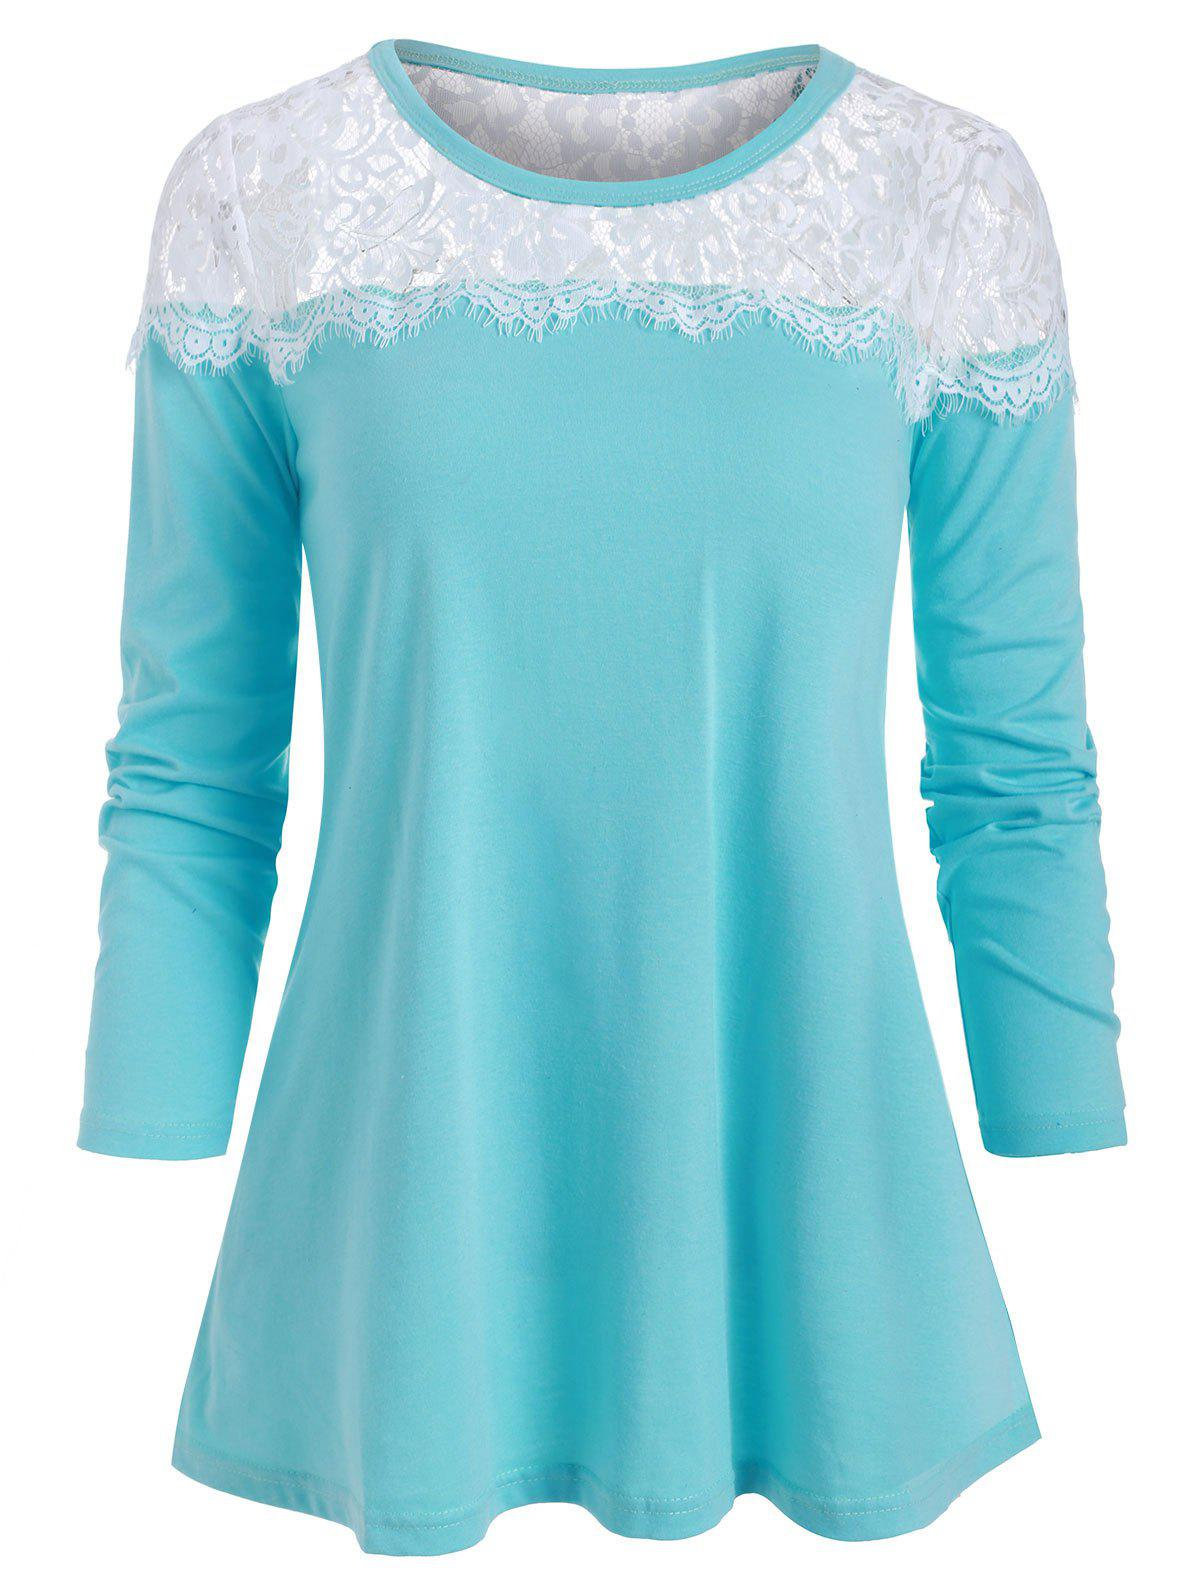 Fancy Lace Panel Round Neck Casual Tee